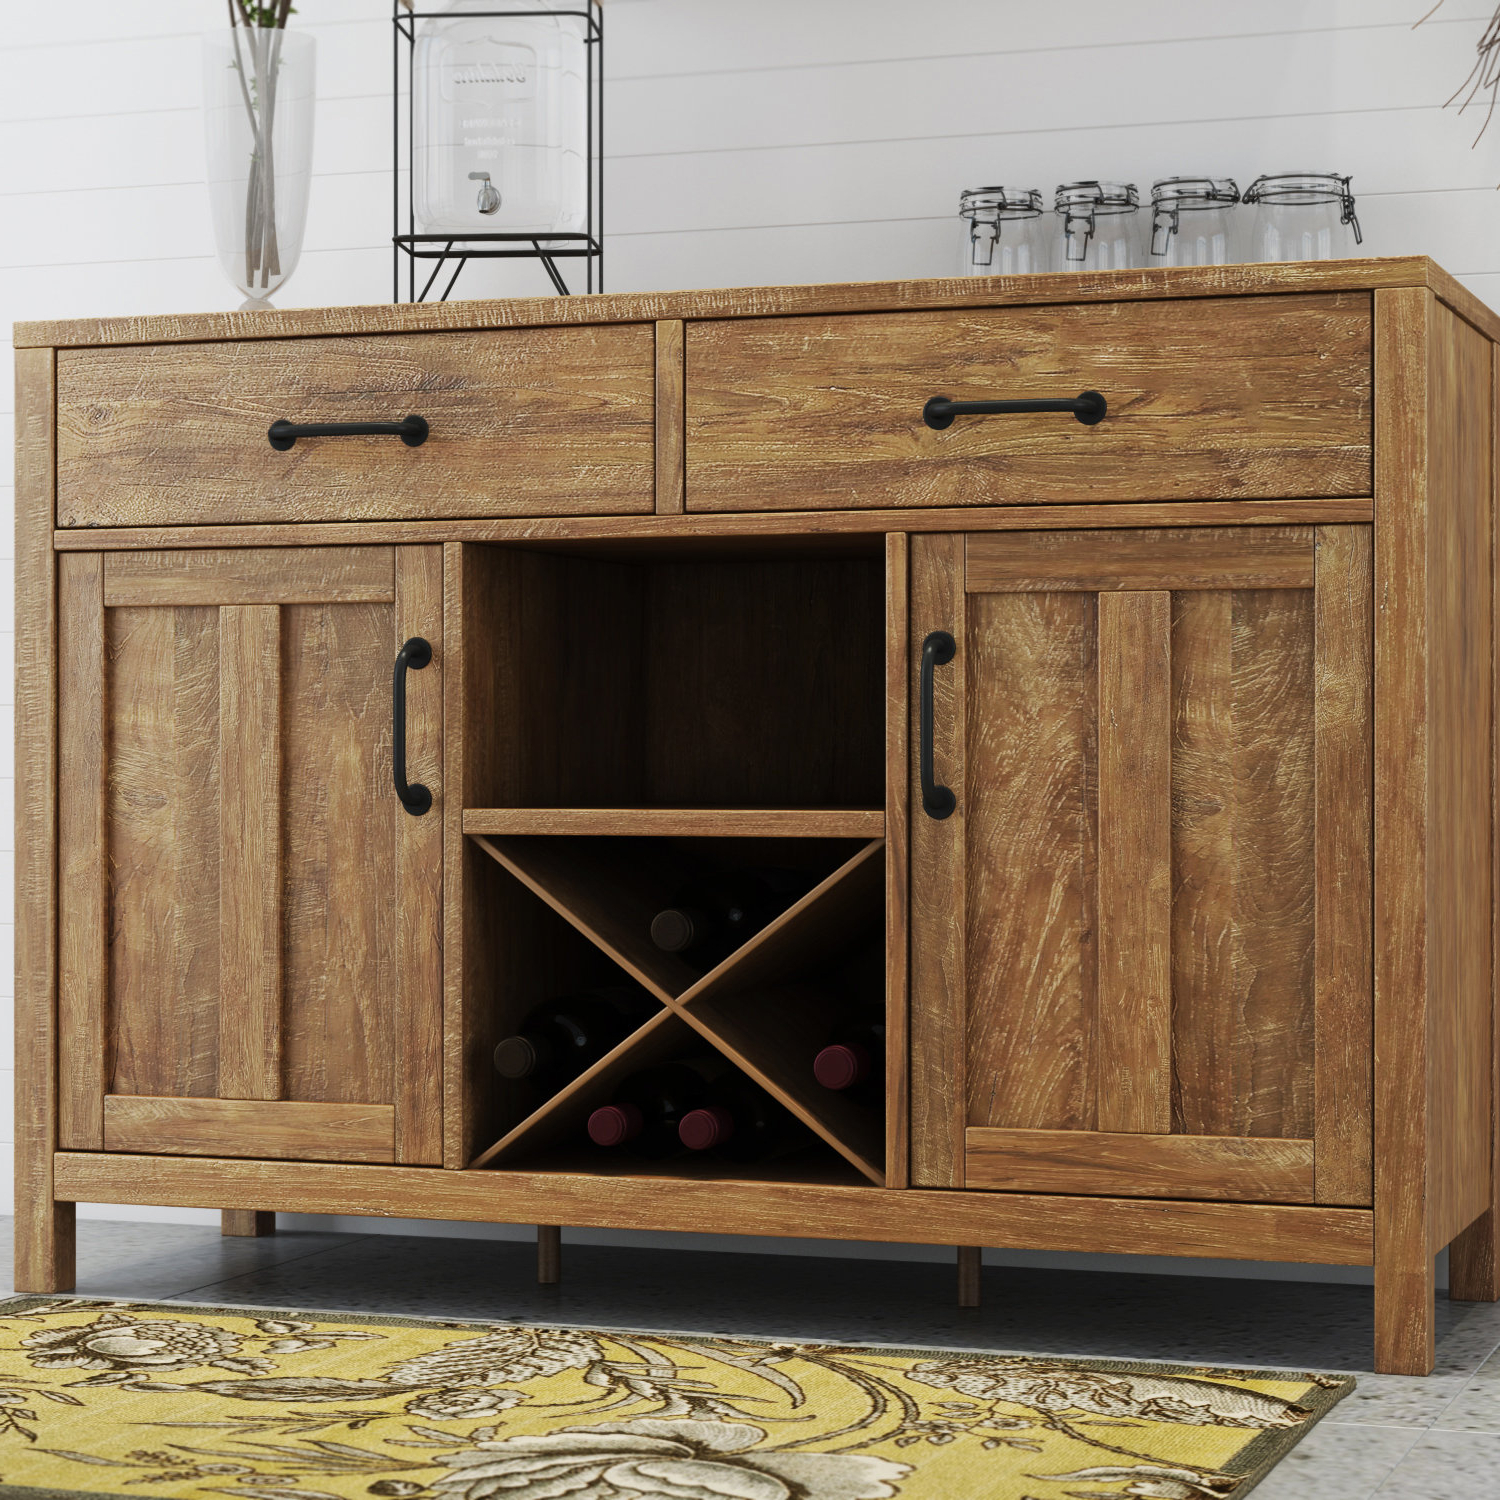 Farmhouse & Rustic Sideboards & Buffets | Birch Lane For Sayles Sideboards (View 15 of 20)